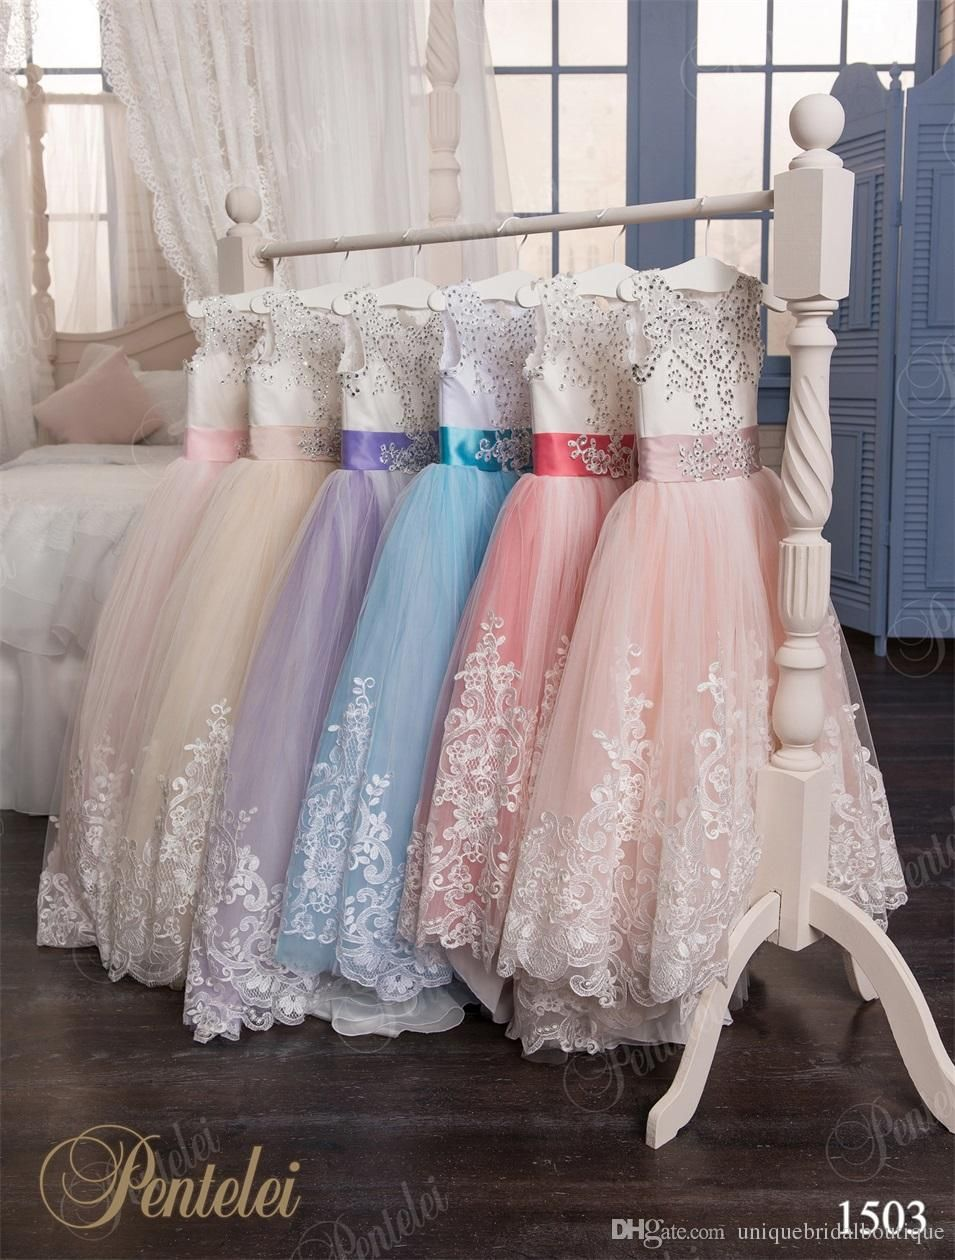 Flower girls dresses 2016 pentelei ball gown appliques tulle cheap dress puppy buy quality dress stylish directly from china dress up party supplies suppliers princess flower girl dresses vestido daminha pageant izmirmasajfo Images